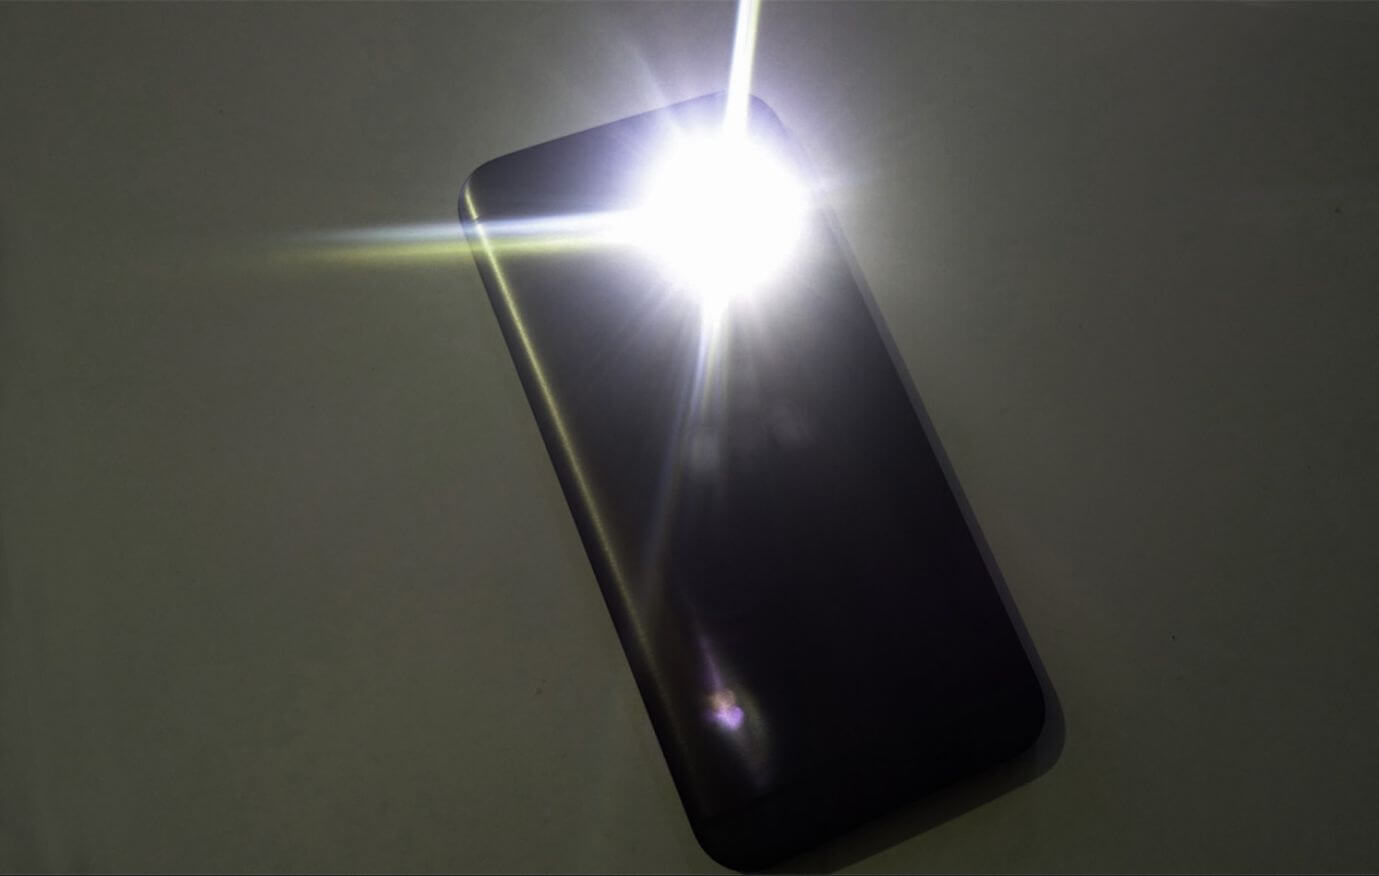 These flashlight apps on Android request a lot of permission and could be spying on you